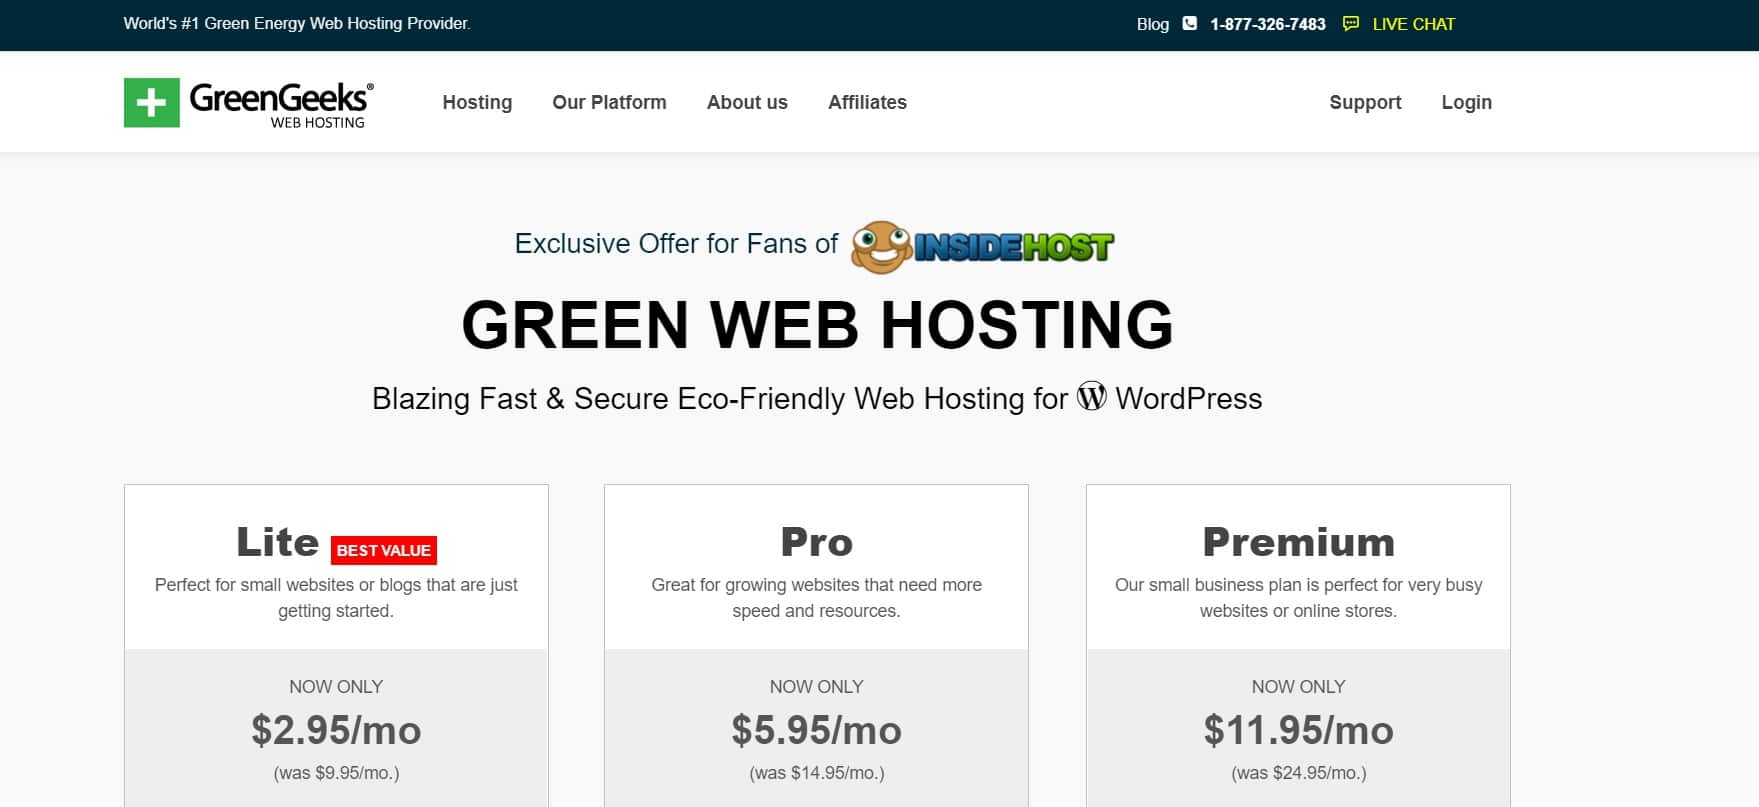 Greengeeks Coupon Code For Insidehost Users